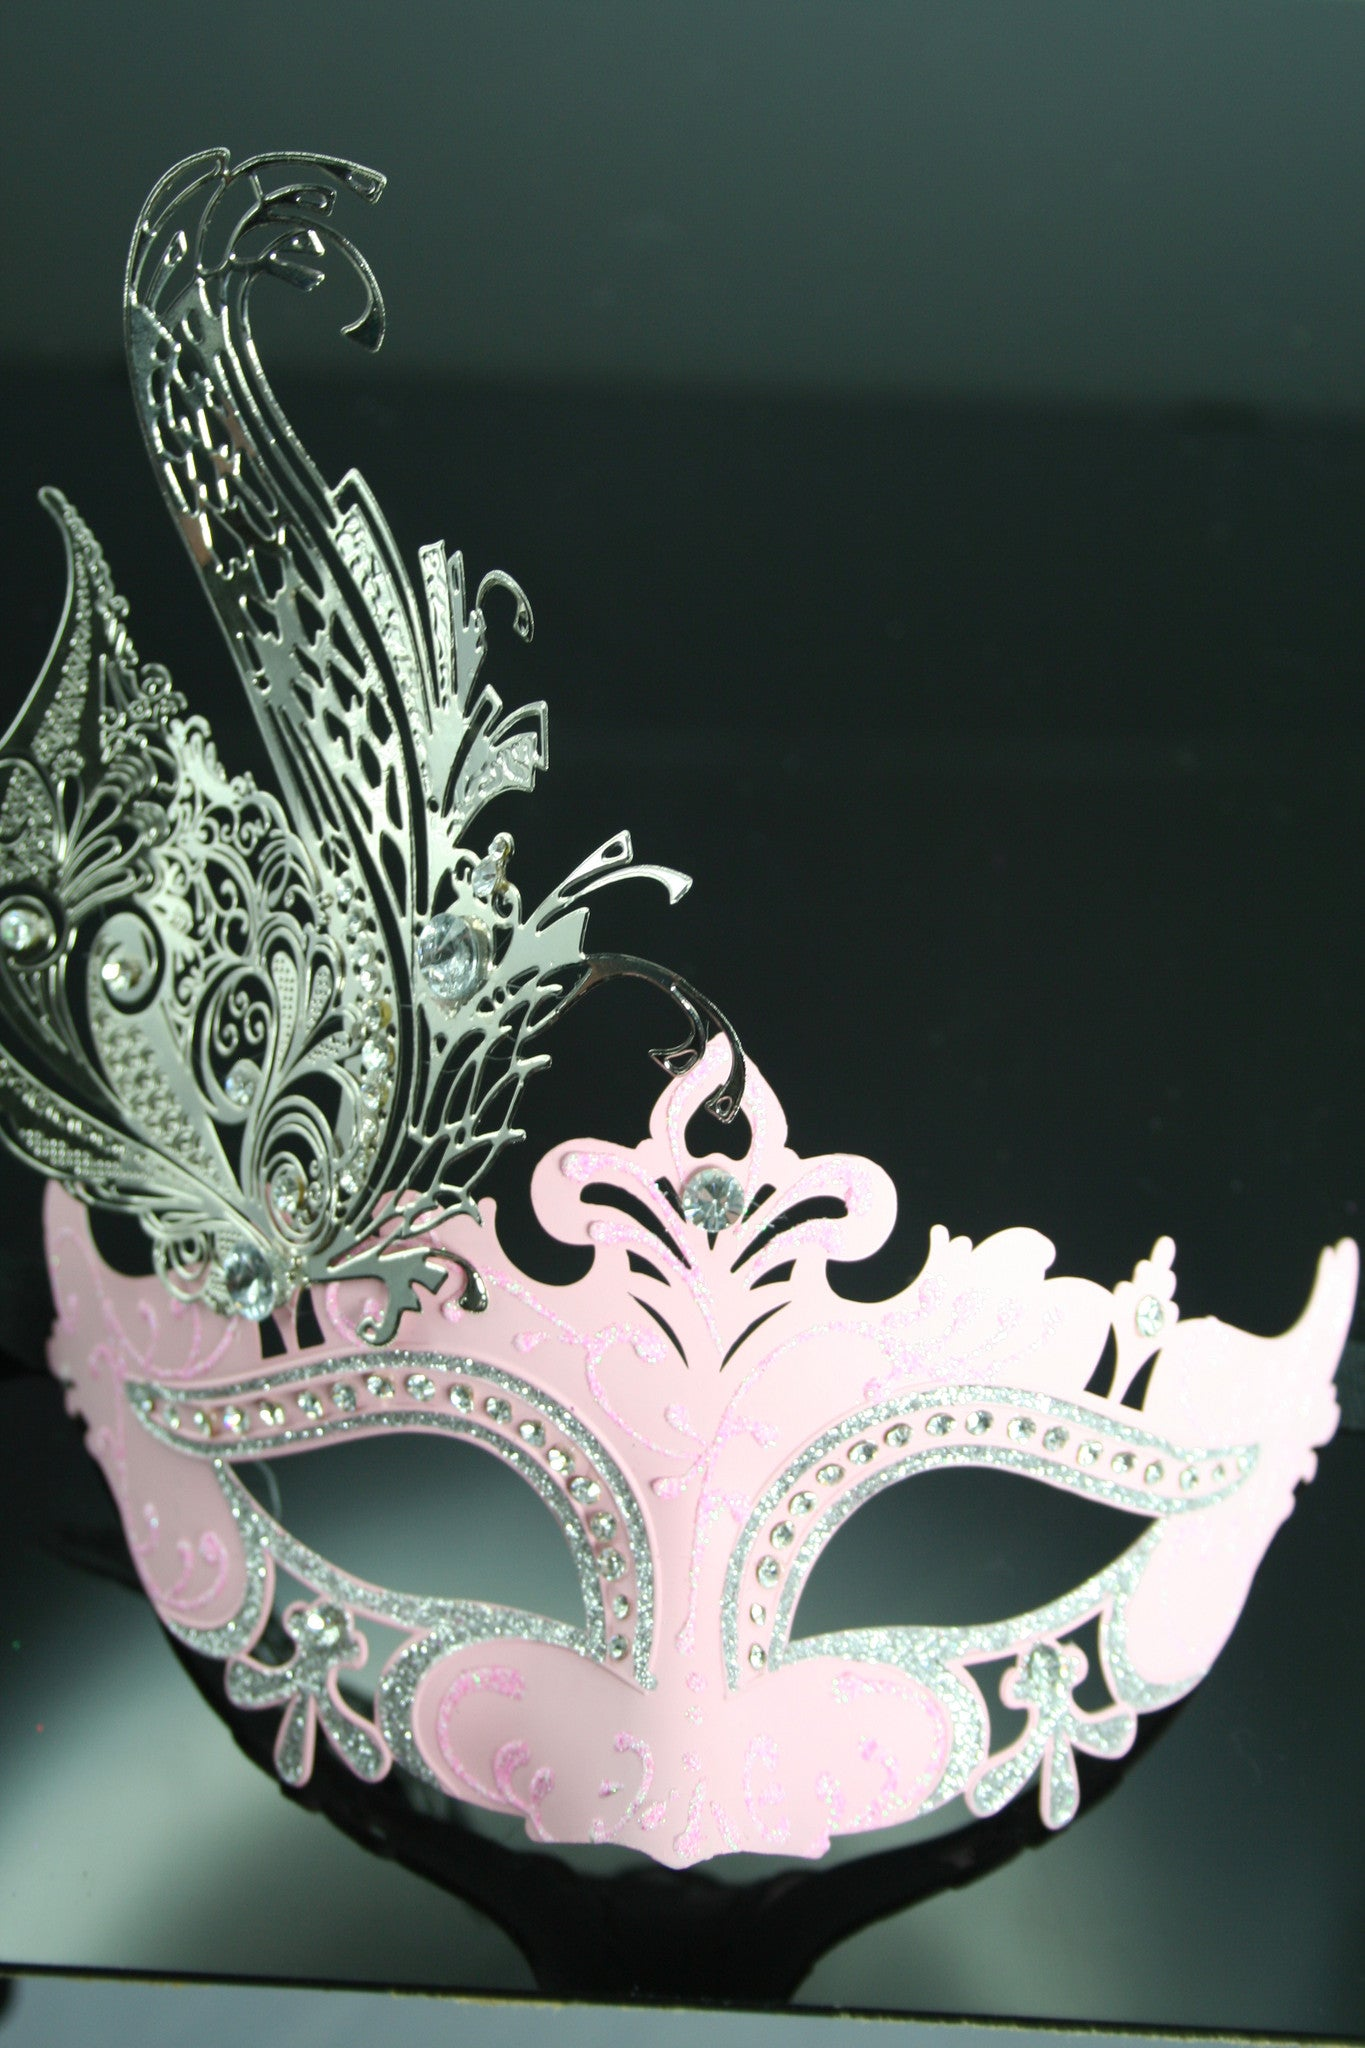 MK62 - Pink Mask with Diamantes and Metal Design - Tamarr Imports Innovative Giftware Pty Ltd